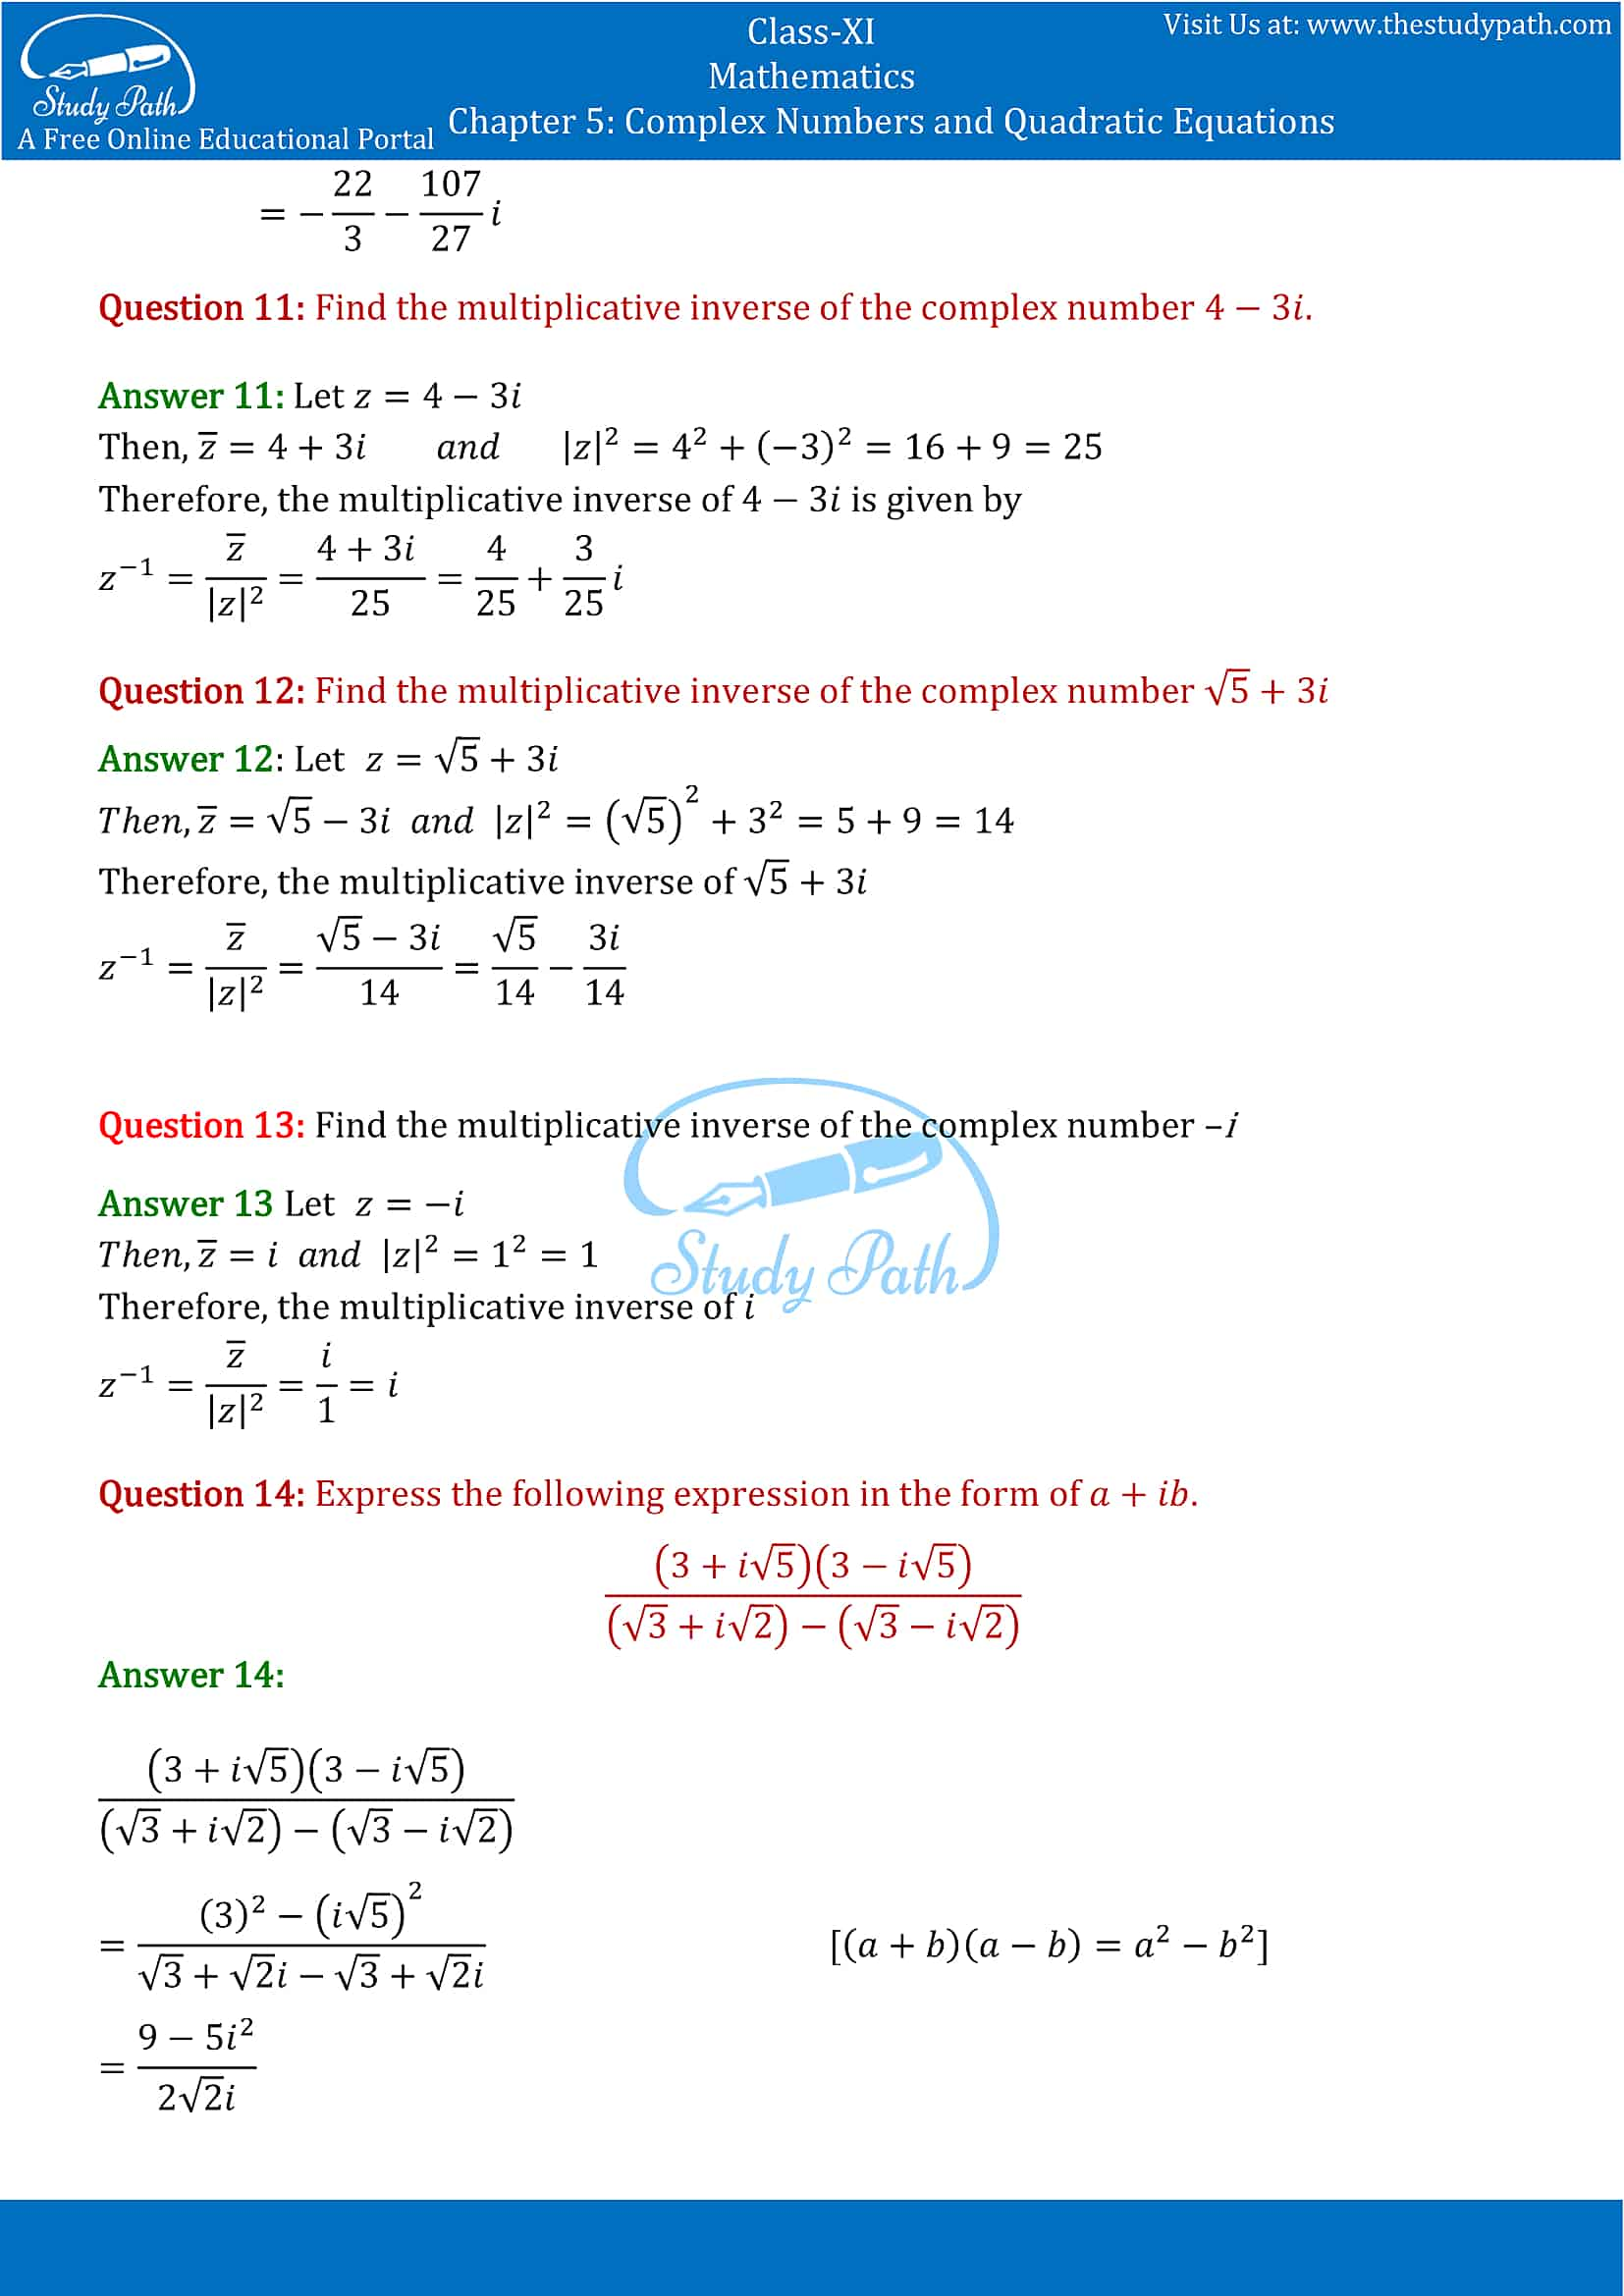 NCERT Solutions for Class 11 Maths chapter 5 Complex Numbers and Quadratic Equations Exercise 5.1 part-4